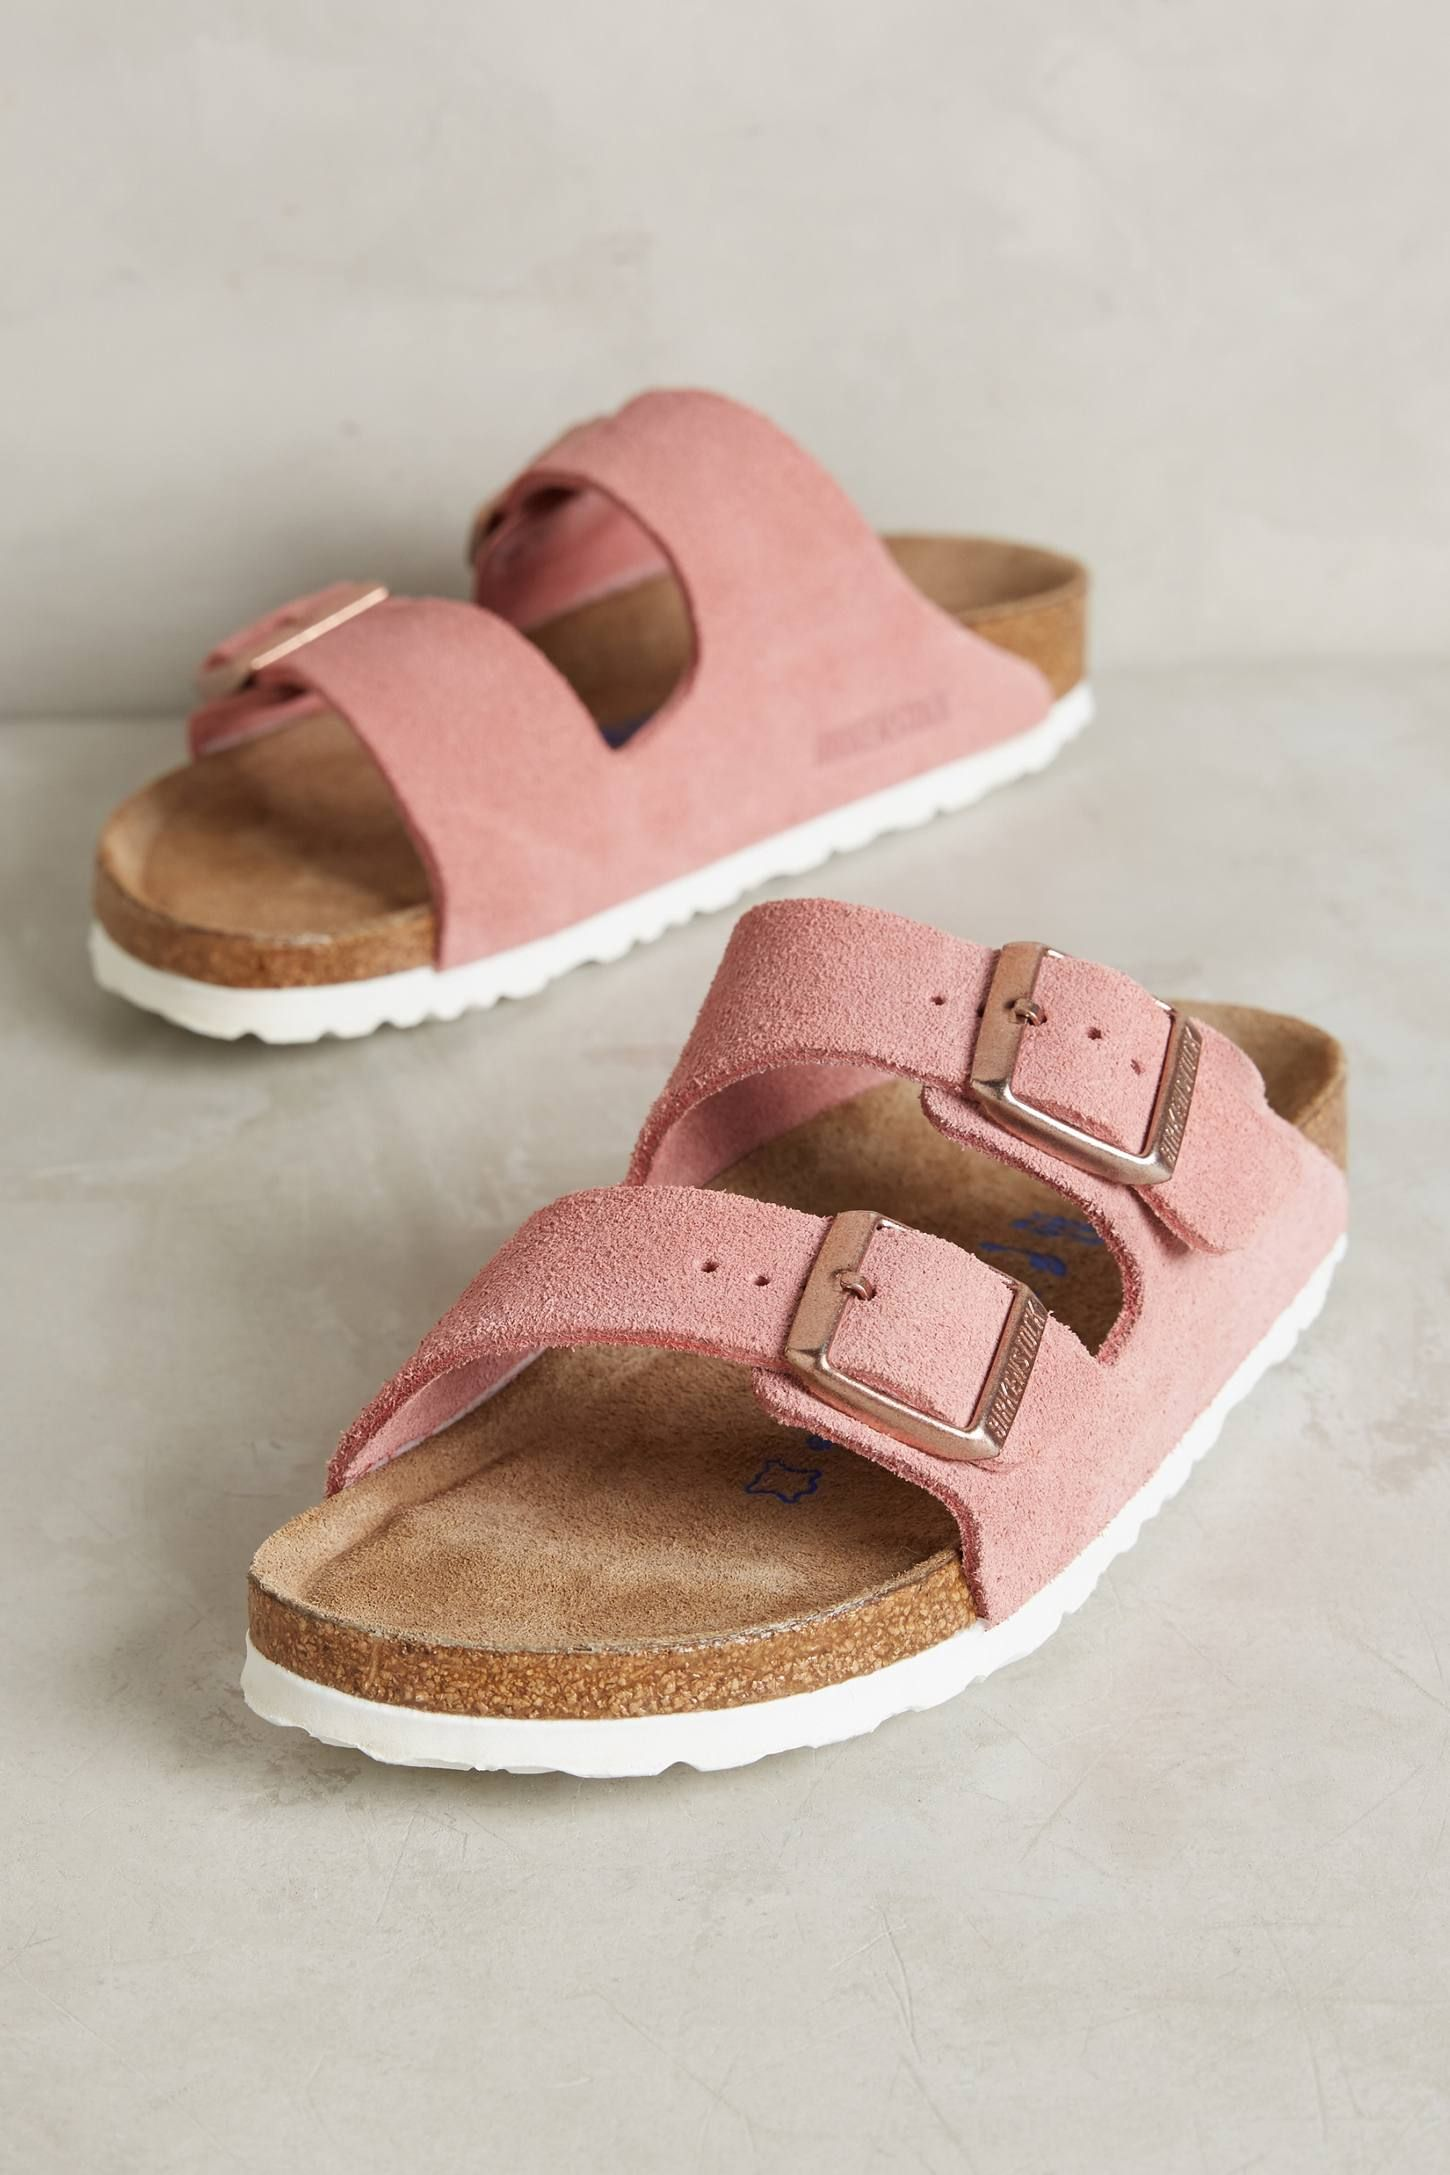 89e8a0c3e97695 Shop the Birkenstock Suede Arizona Sandals and more Anthropologie at  Anthropologie today. Read customer reviews